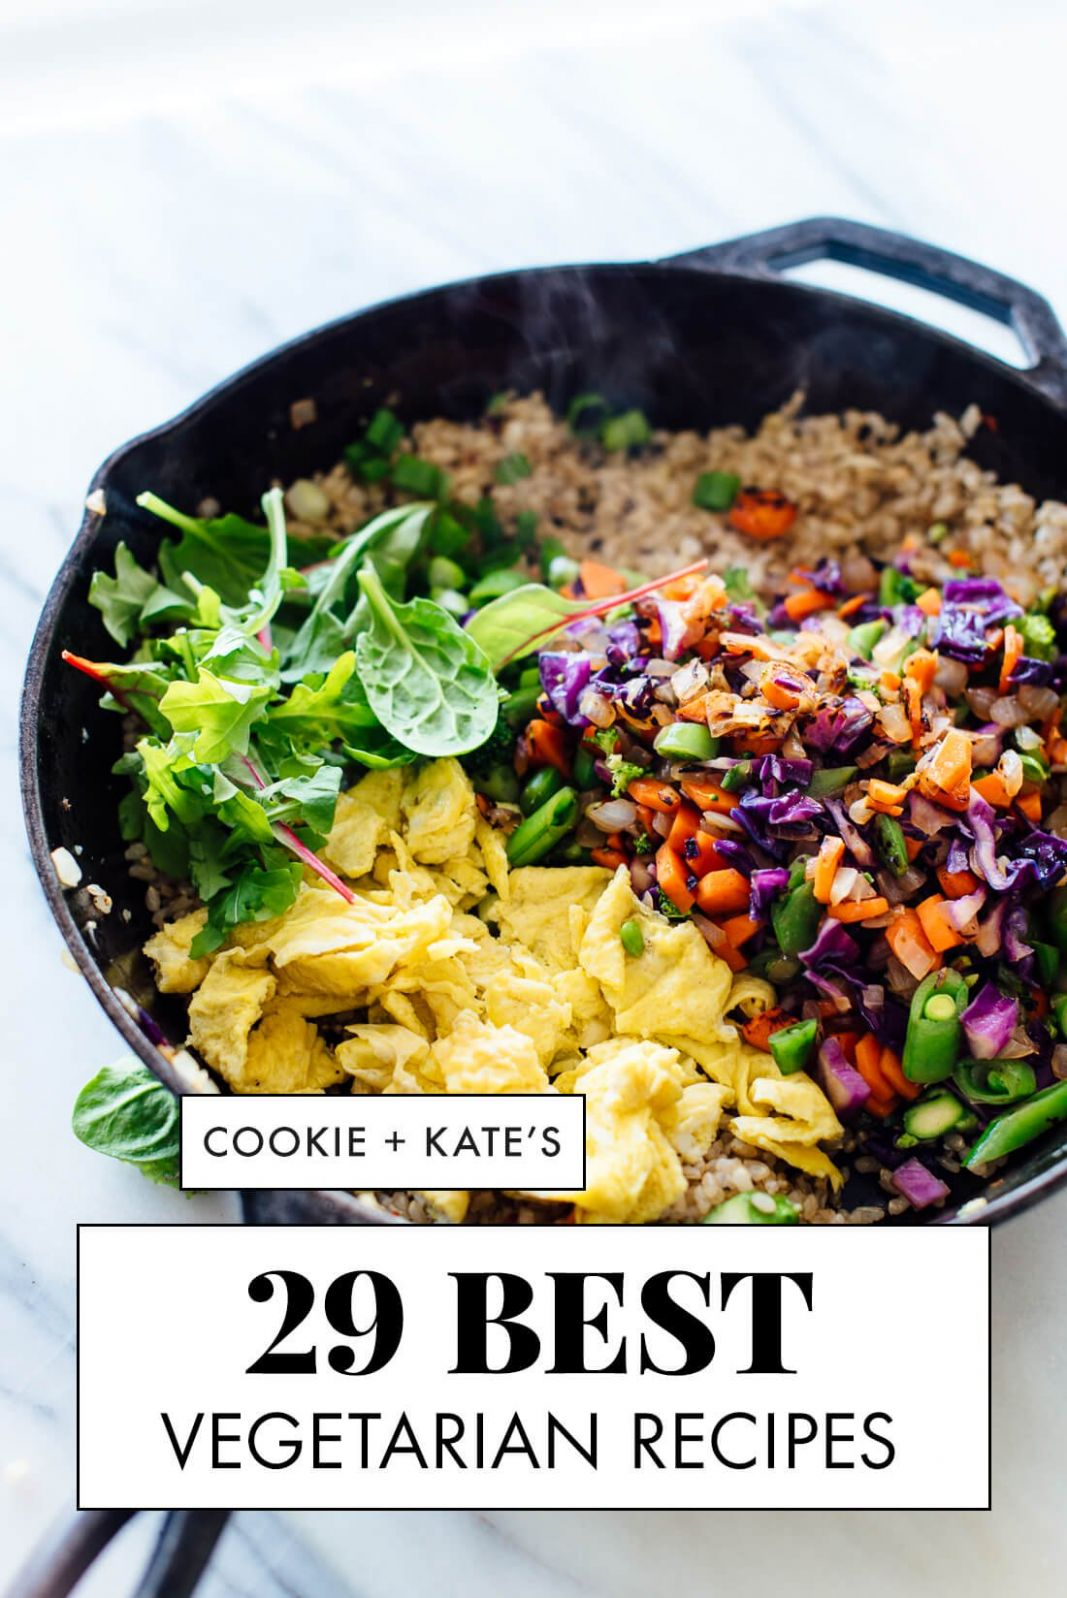 8 Best Vegetarian Recipes - Cookie and Kate - Vegetable Recipes List